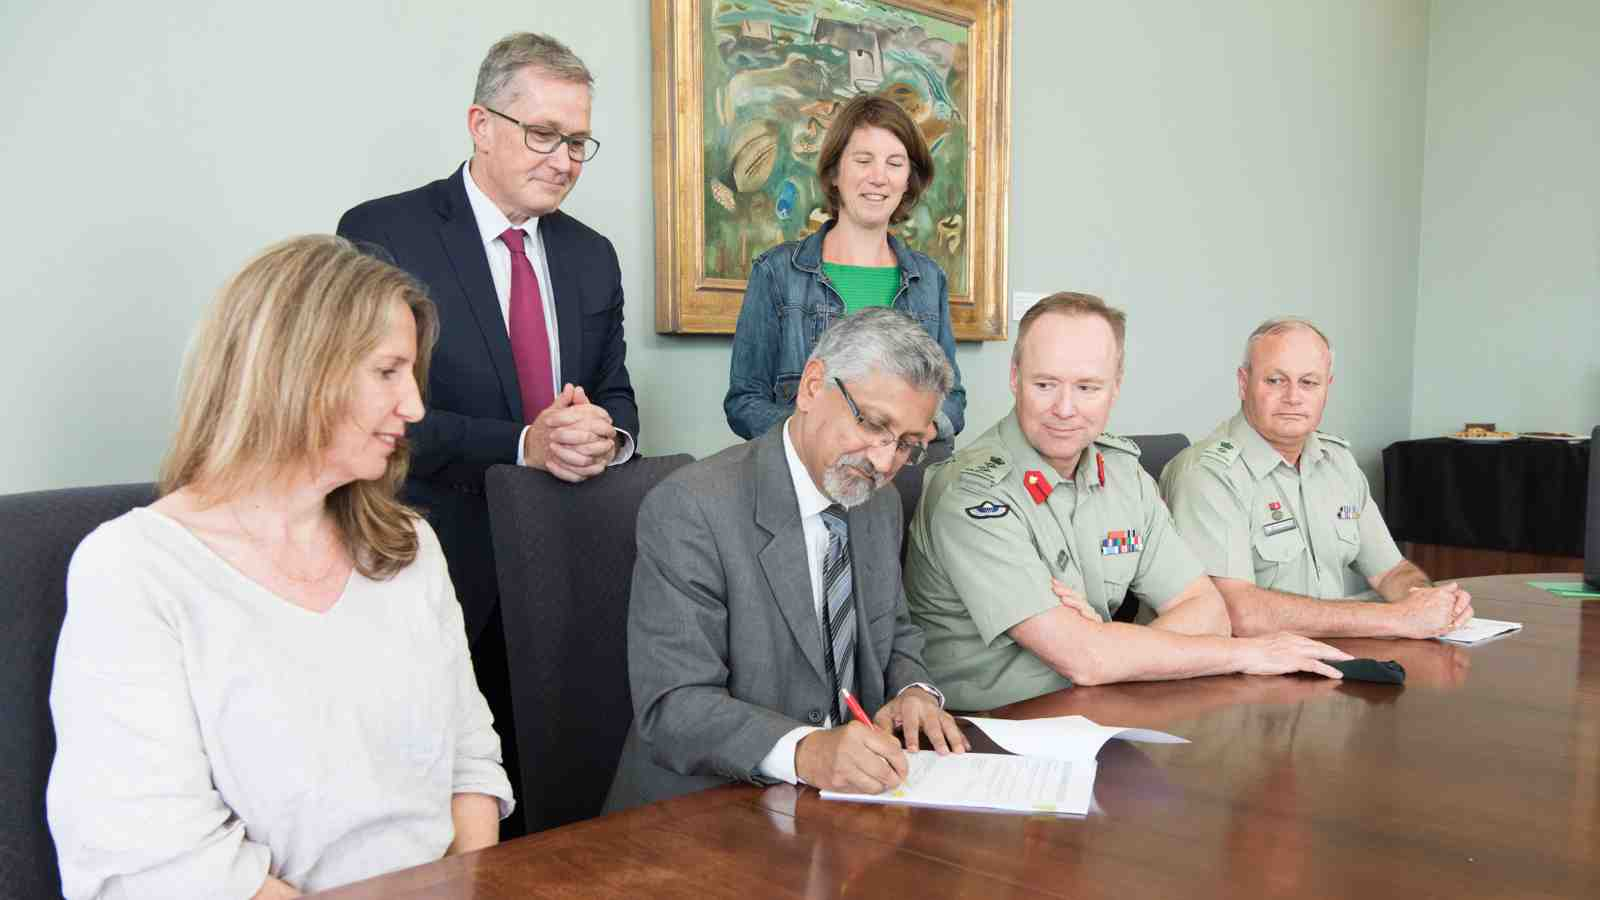 Victoria staff and Defence force staff at a table. A person in the middle is signing a document.